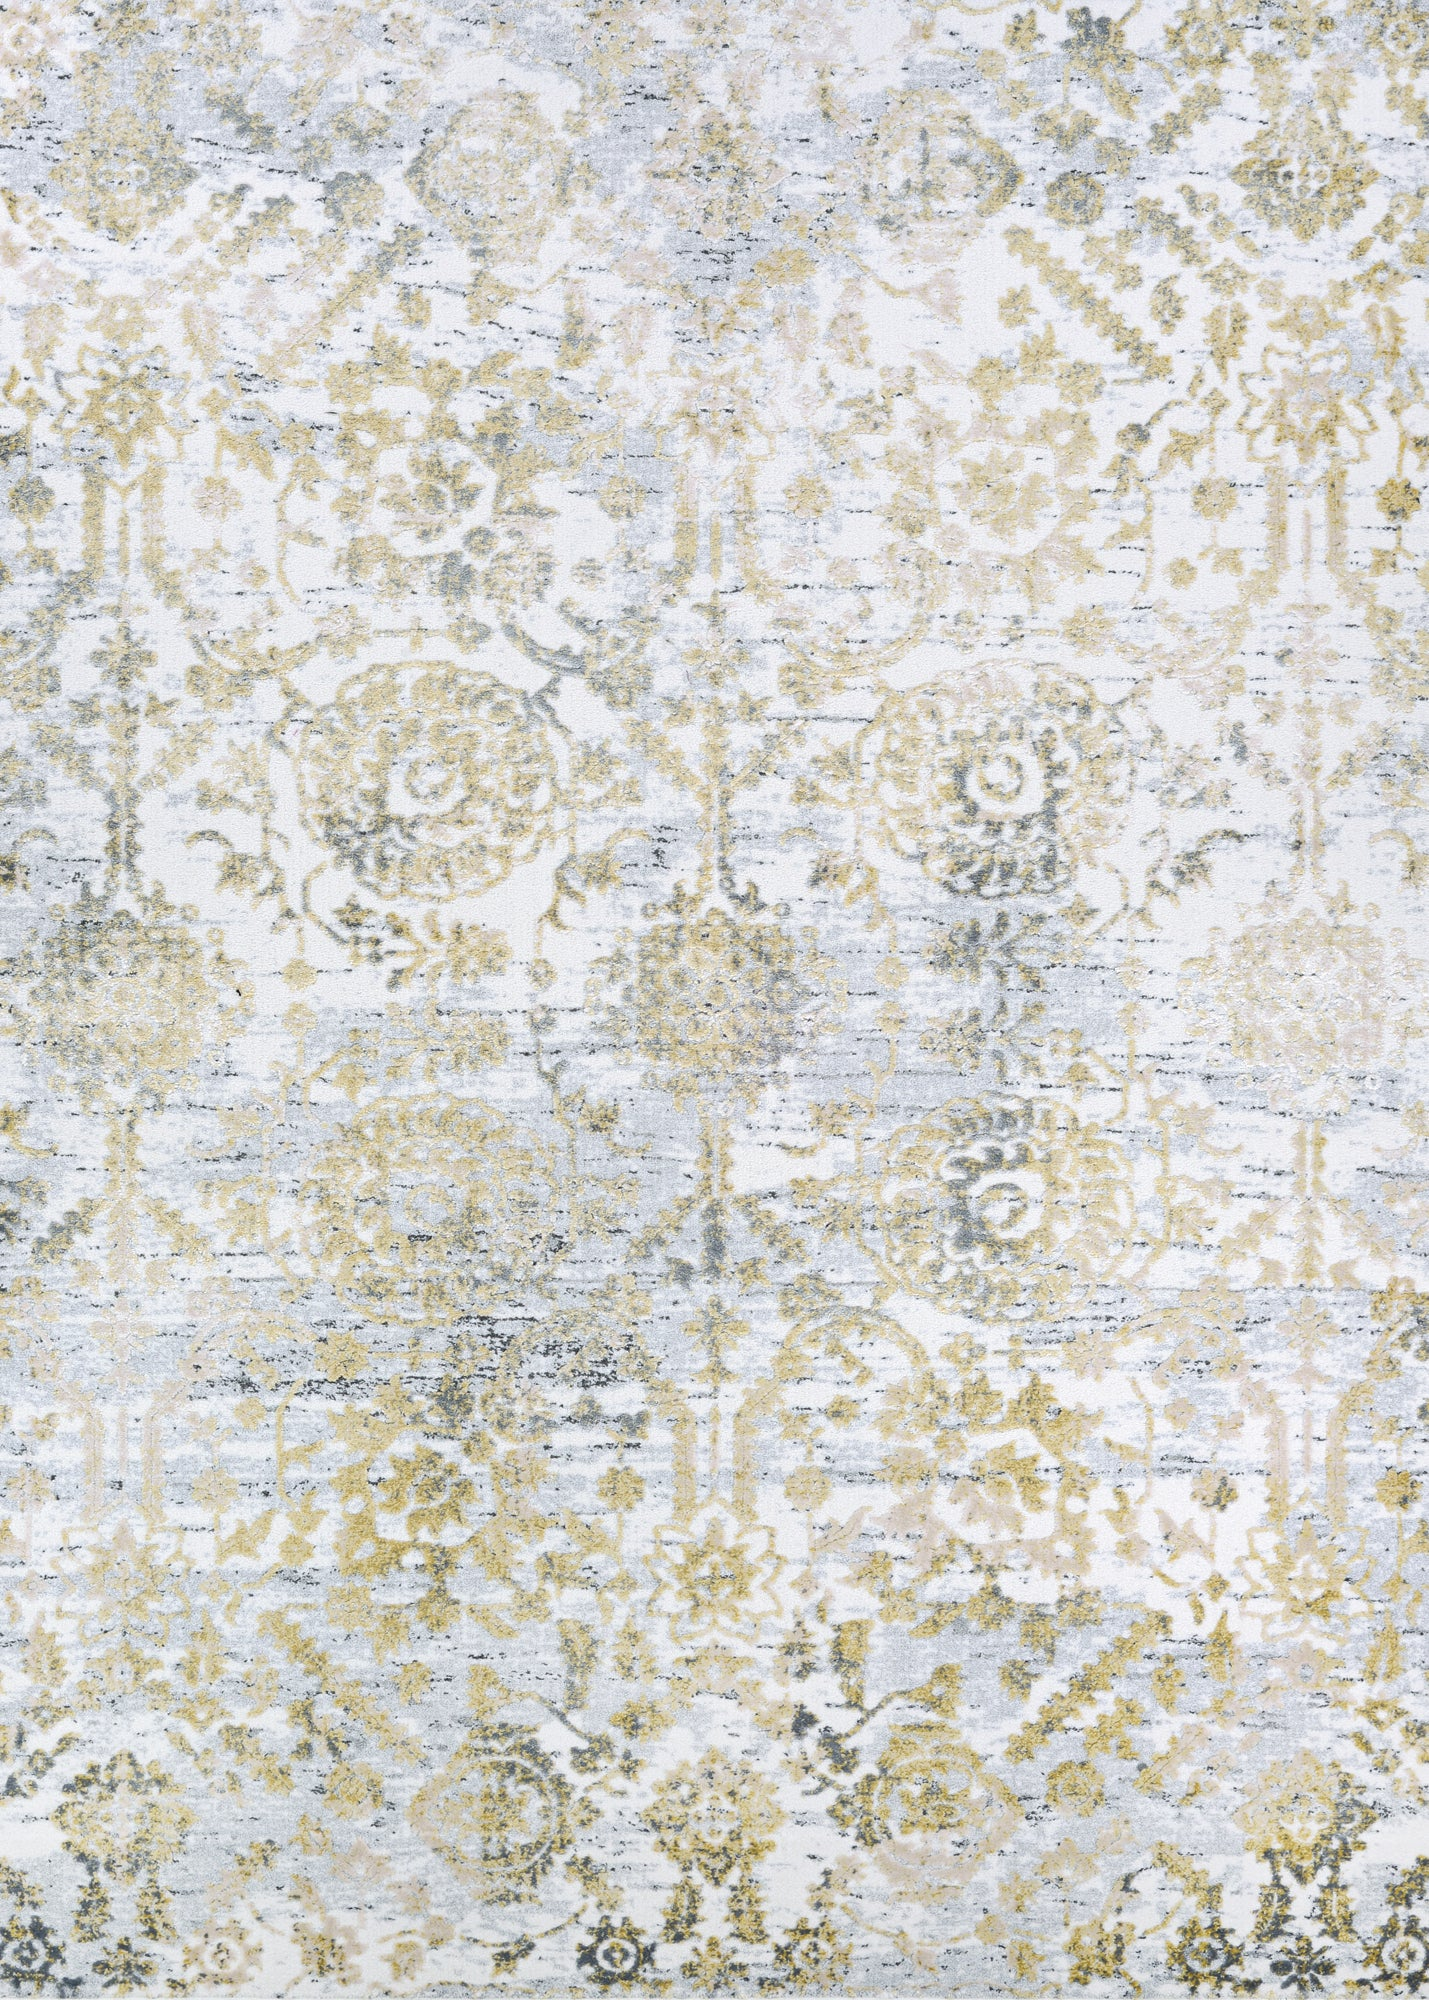 Couristan Calinda Marlowe Gold/Silver/Ivry Area Rug main image